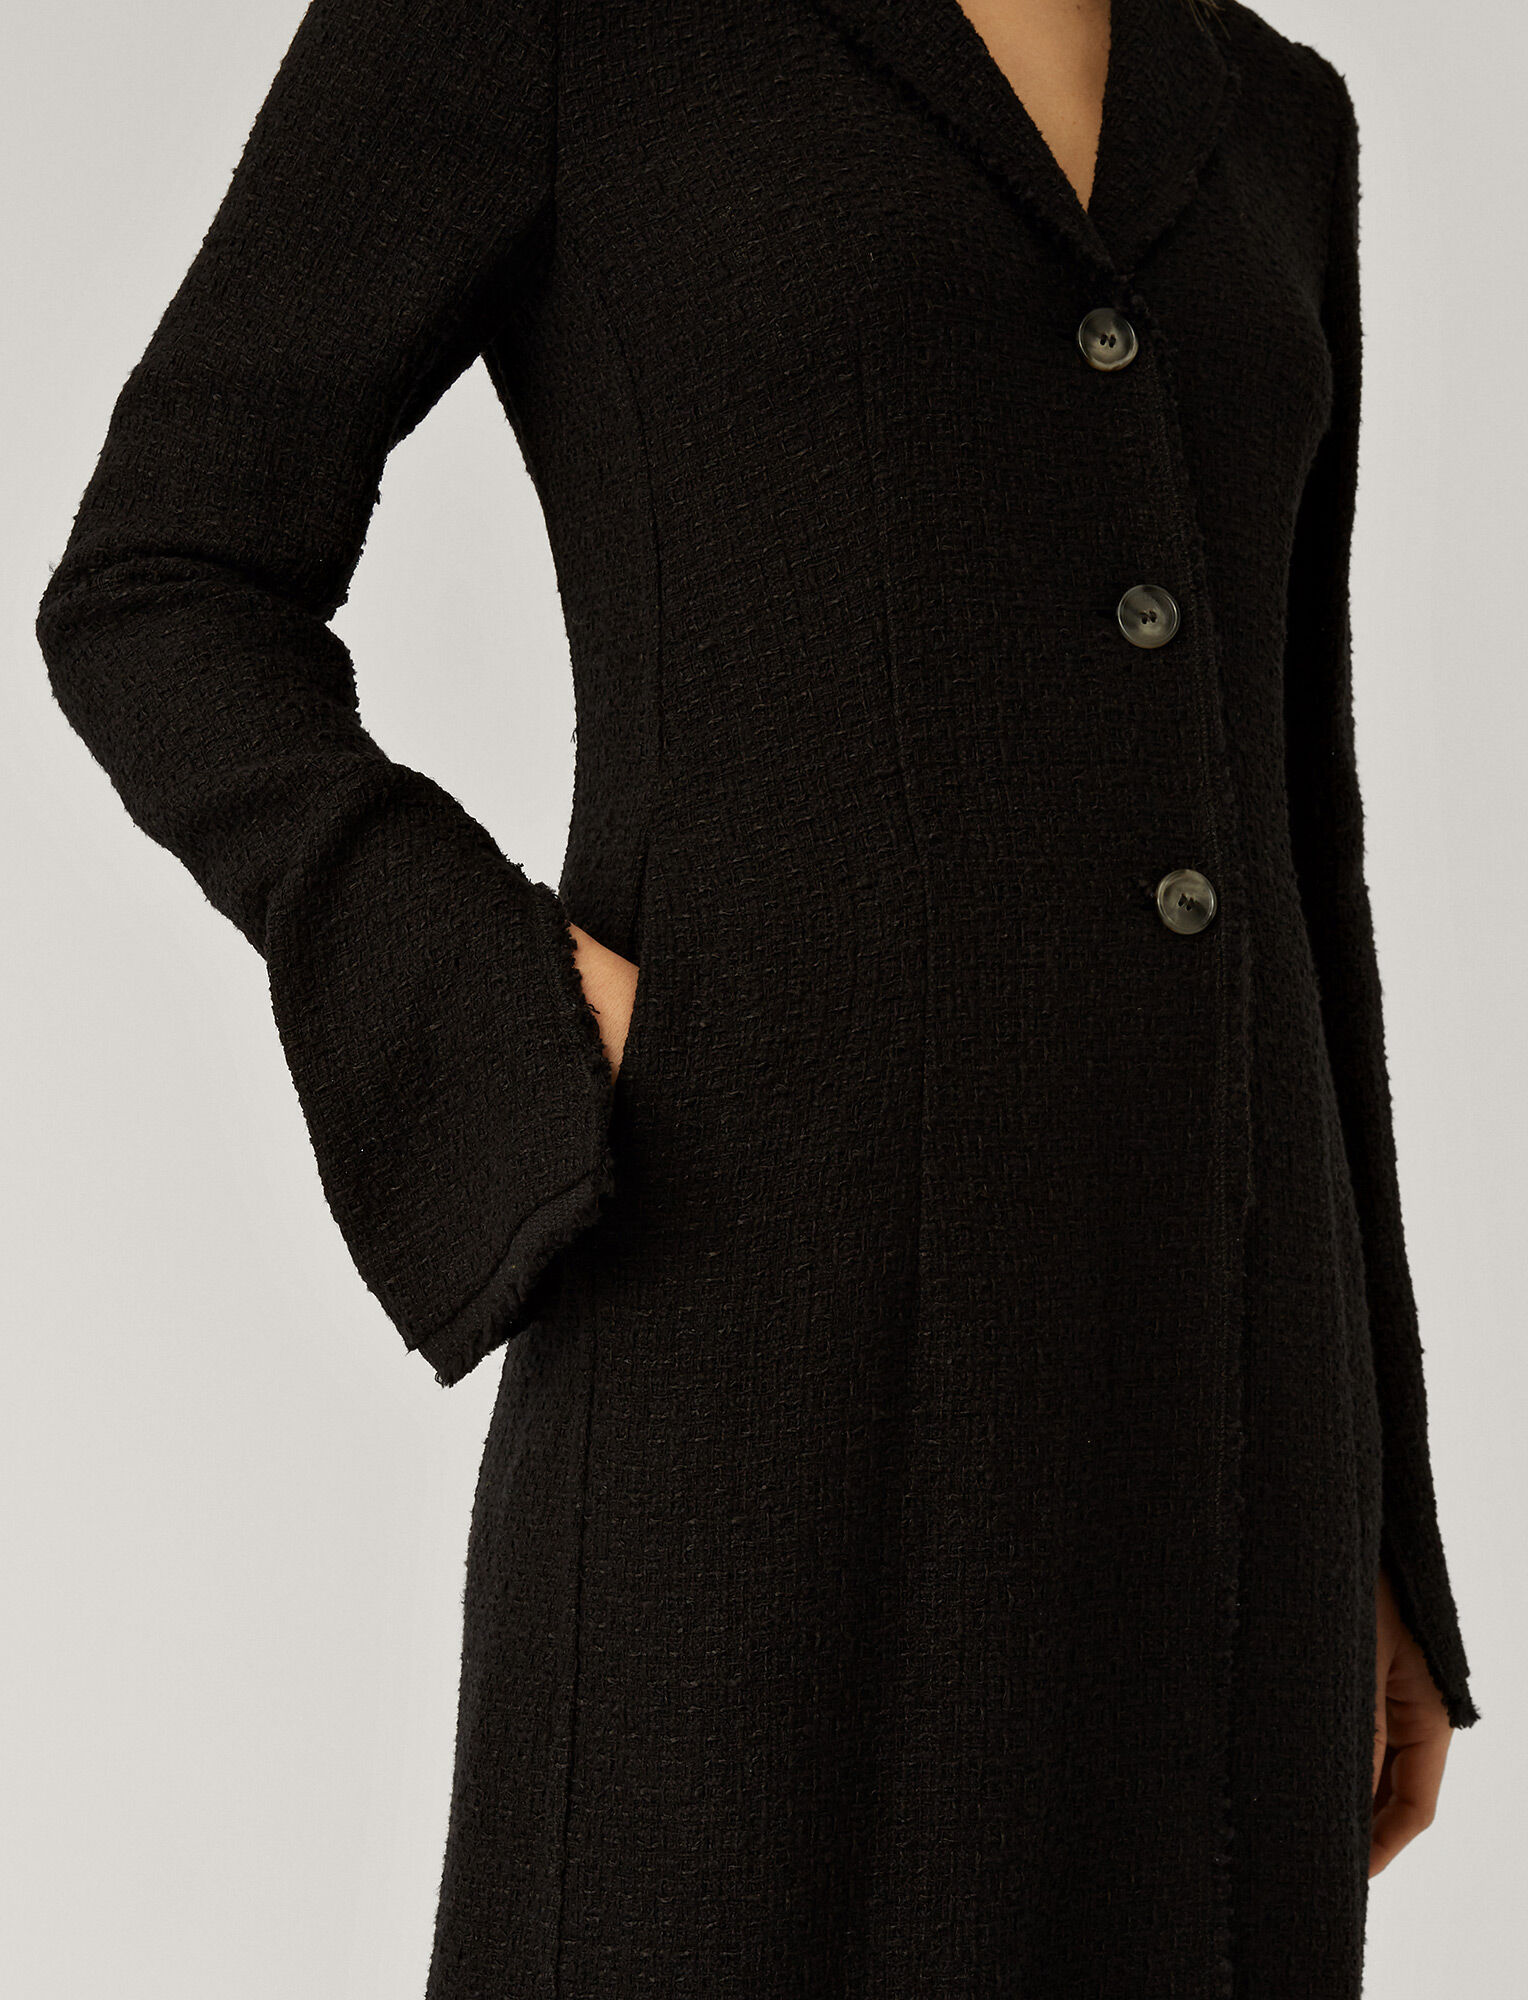 Joseph, Cierra Tweed Coat, in BLACK